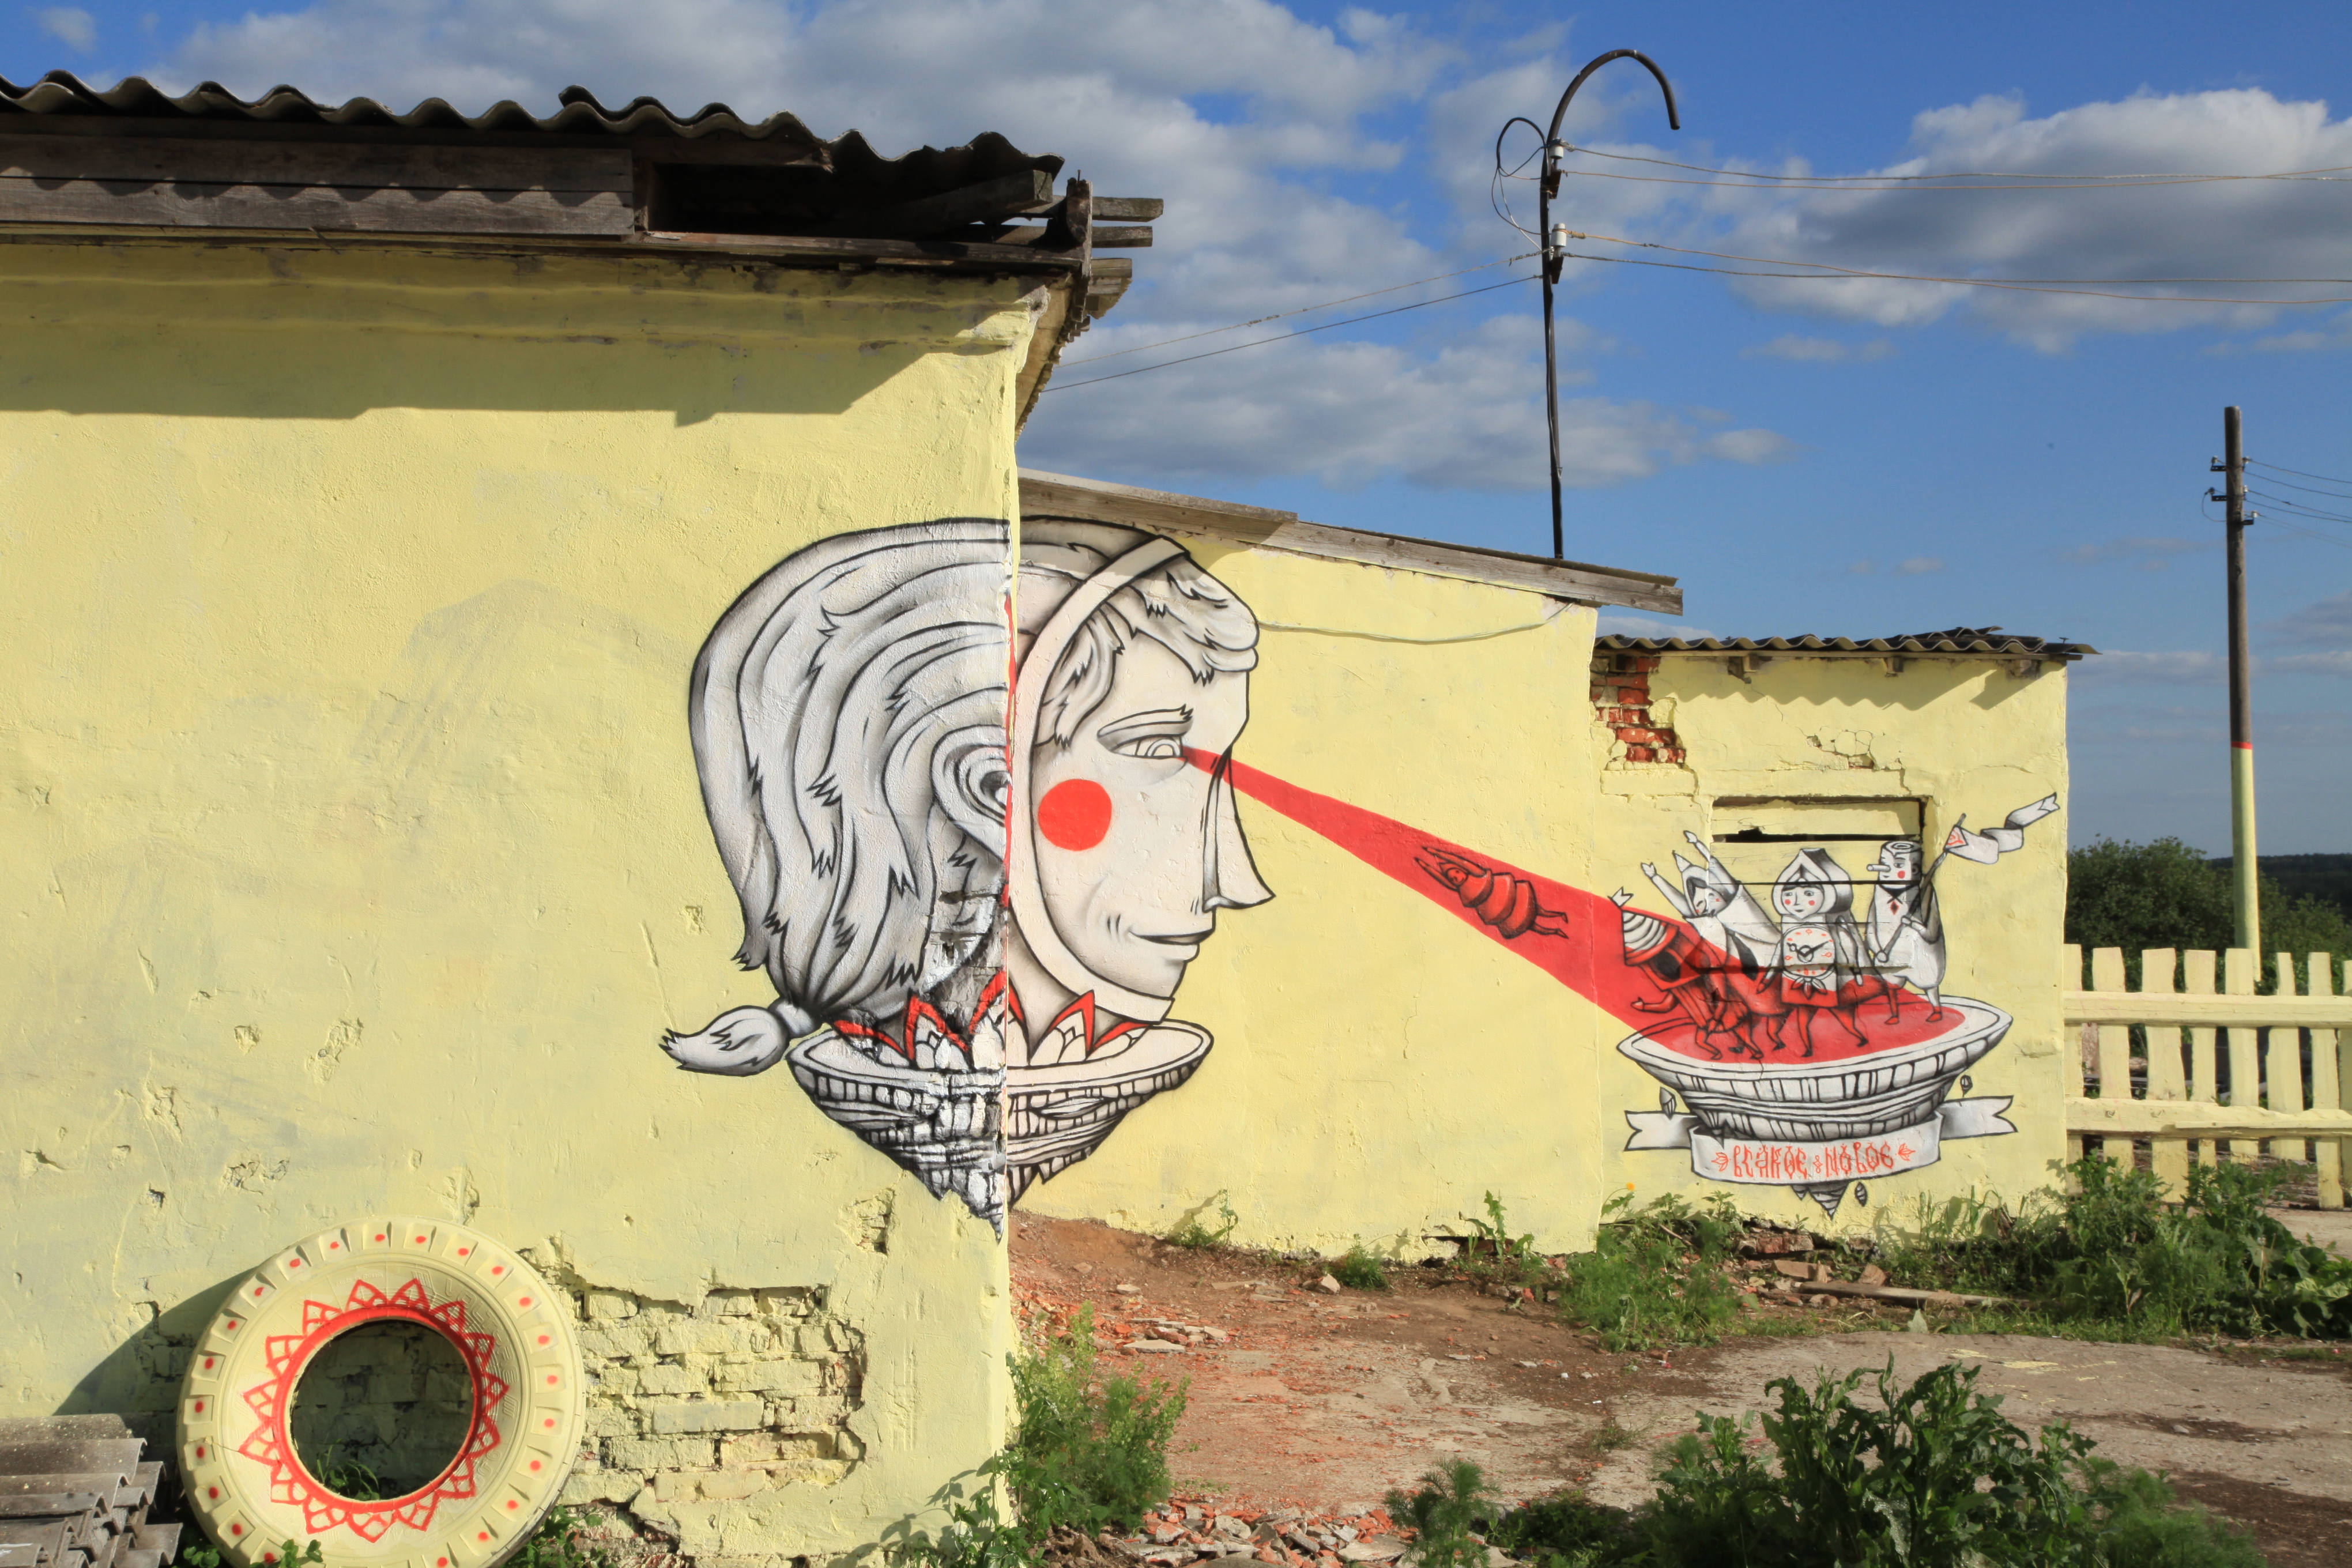 Painting | The Street Art Curator